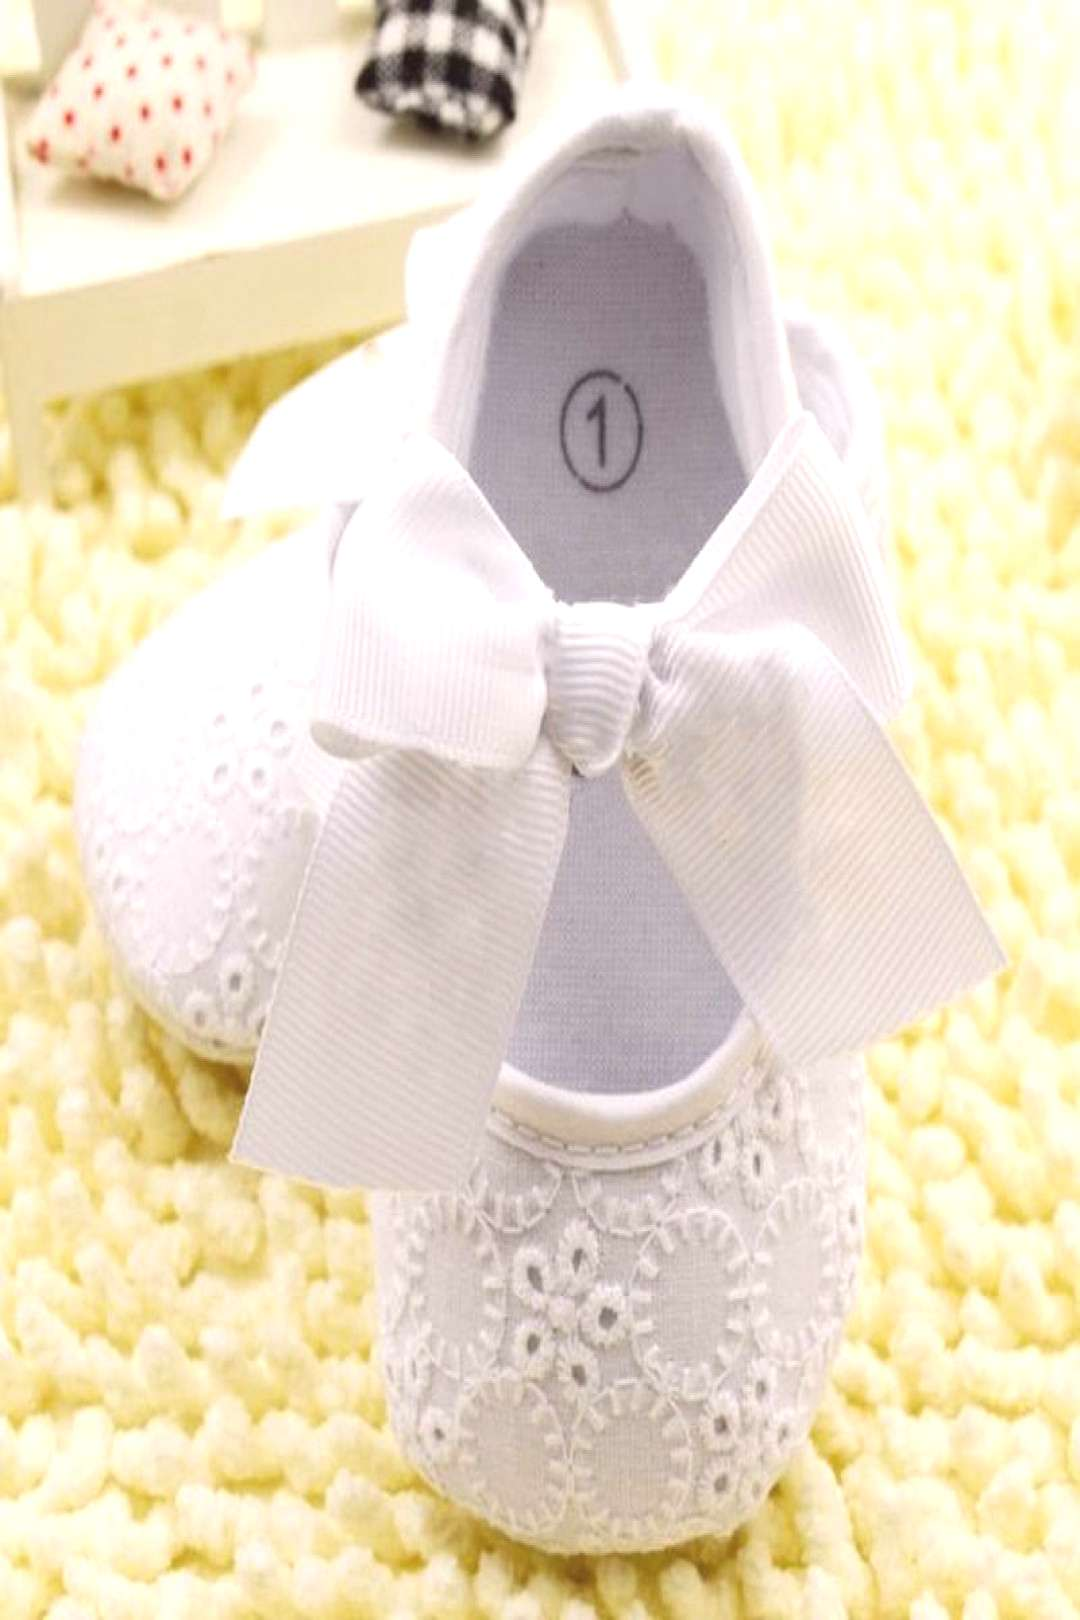 White Bowknot Baby Girl Lace Shoes Toddler Prewalker Anti-Slip First Walker Simple Baby Shoes - Buy